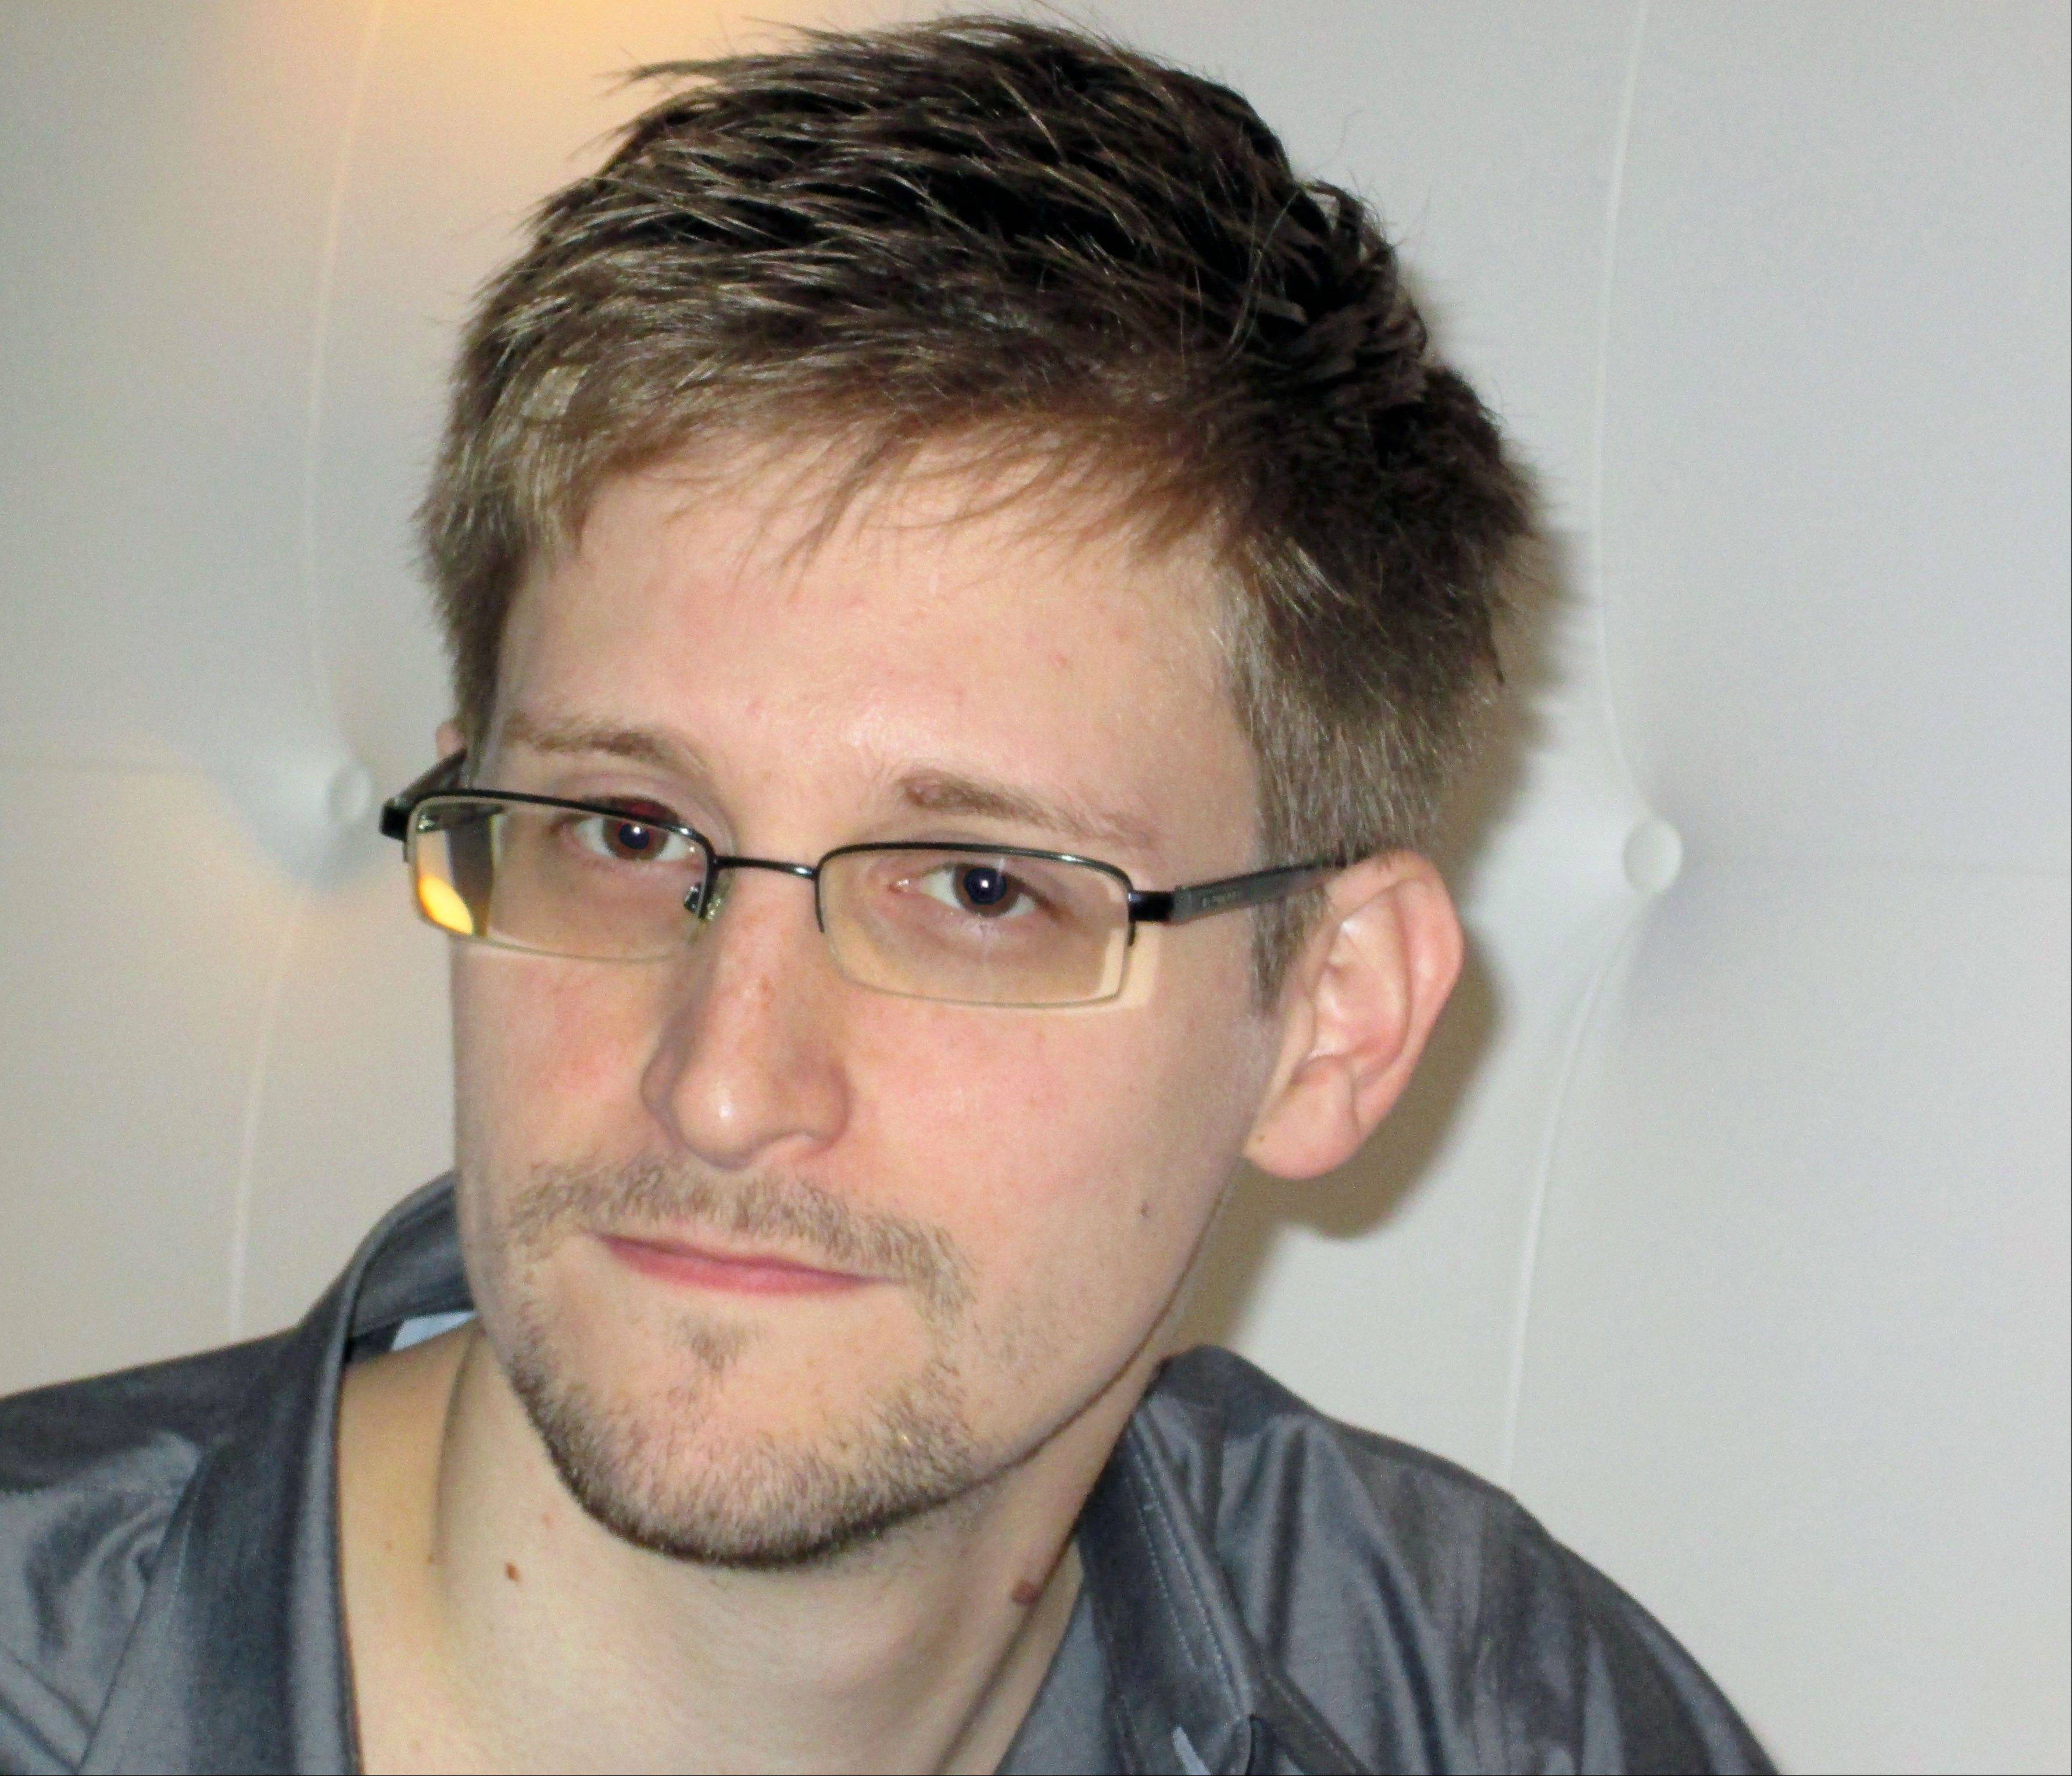 This image made available by The Guardian Newspaper in London shows an undated image of Edward Snowden, 29. Snowden worked as a contract employee at the National Security Agency and is the source of The Guardian's disclosures about the U.S. government's secret surveillance programs, as the British newspaper reported Sunday, June 9, 2013. (AP Photo/The Guardian, Ewen MacAskill) NO SALES NO ARCHIVE ONE TIME USE ONLY MANDATORY CREDIT